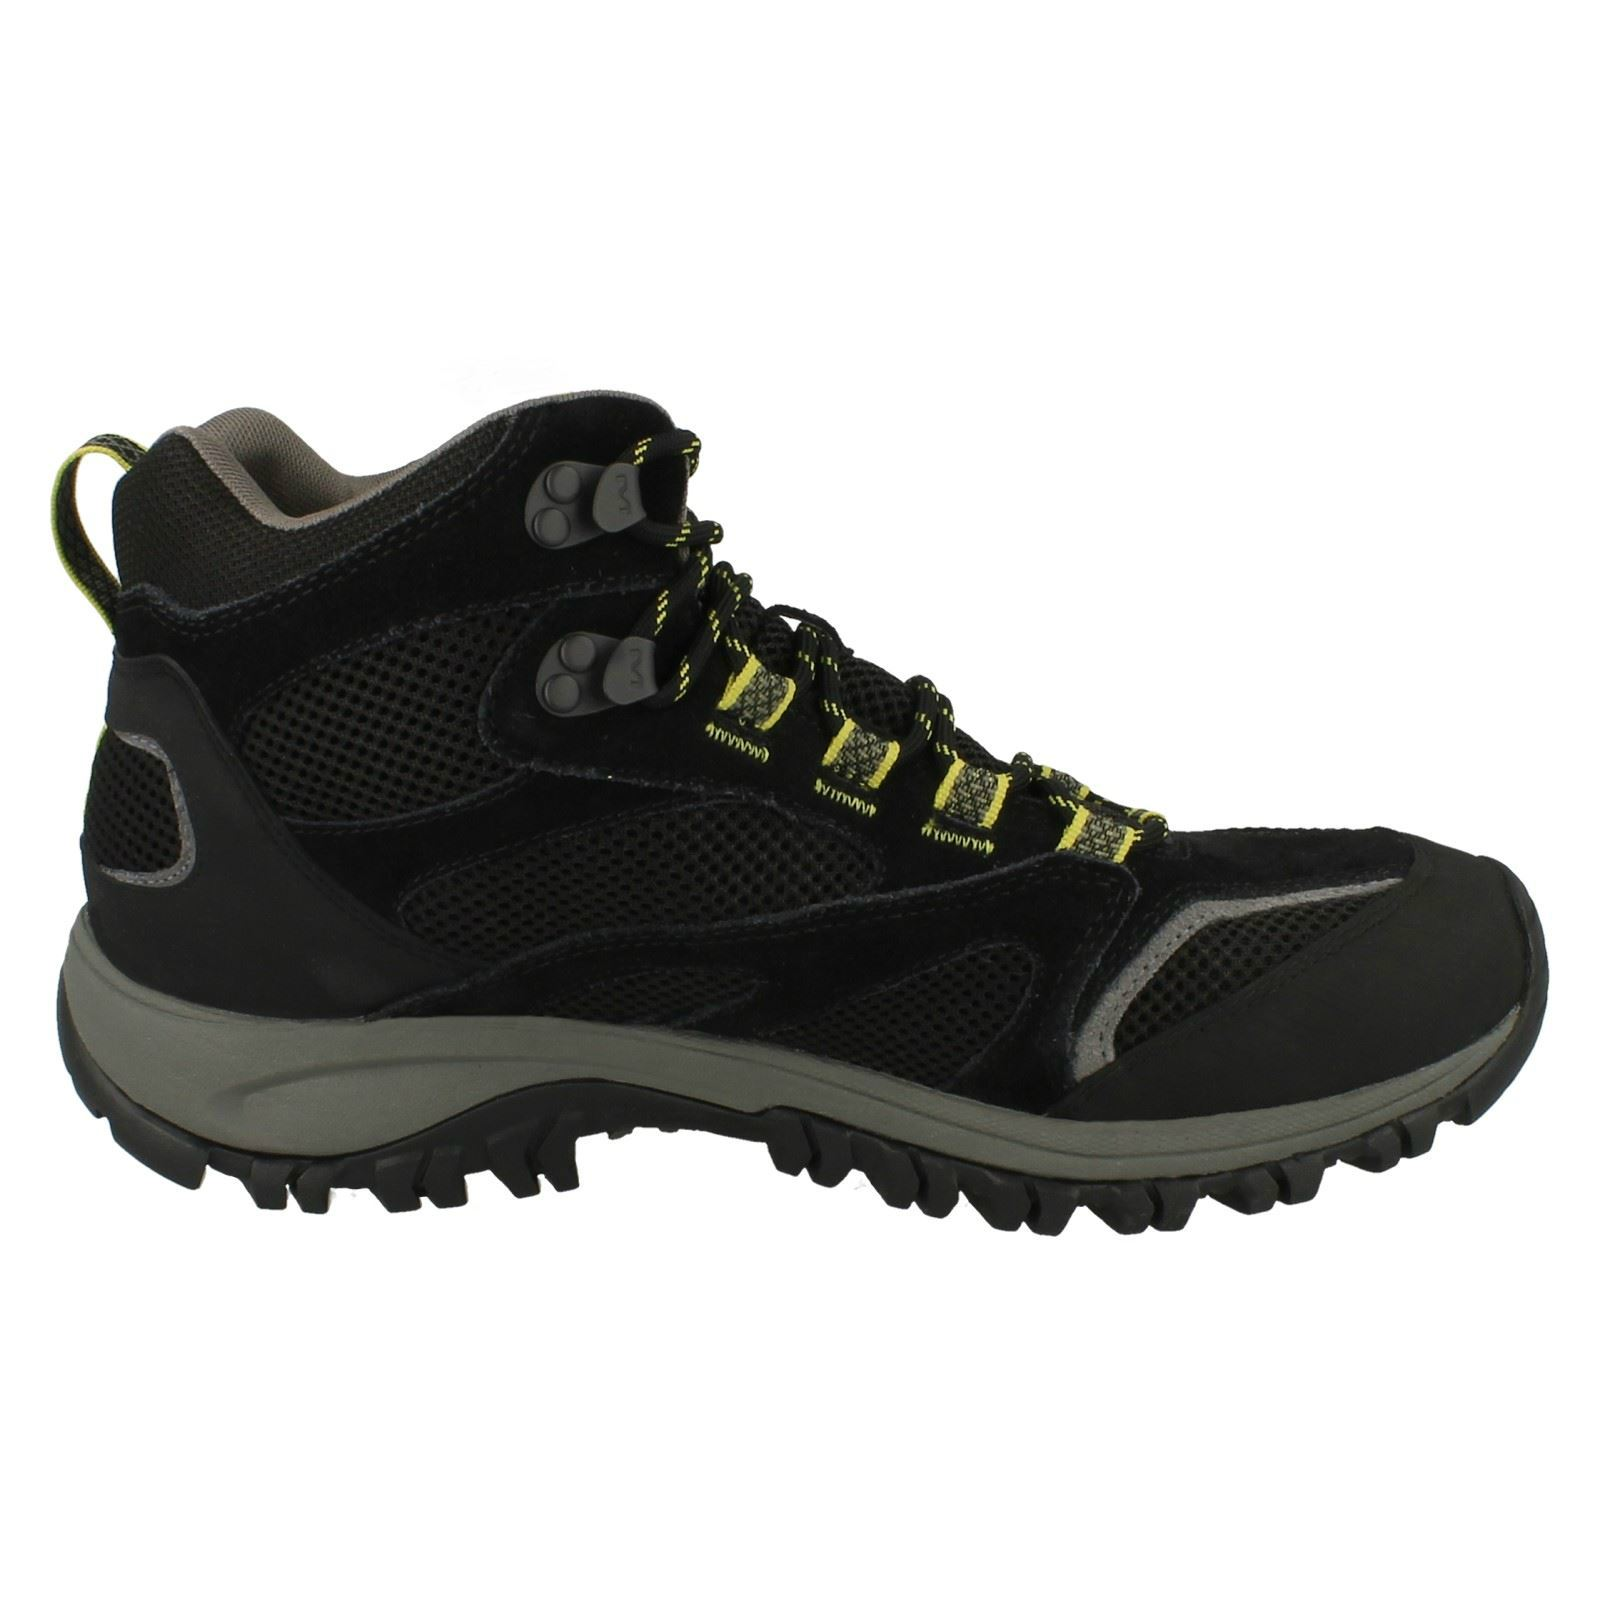 thumbnail 7 - Mens-Merrell-Phoenix-Mid-Waterproof-Walking-Boots